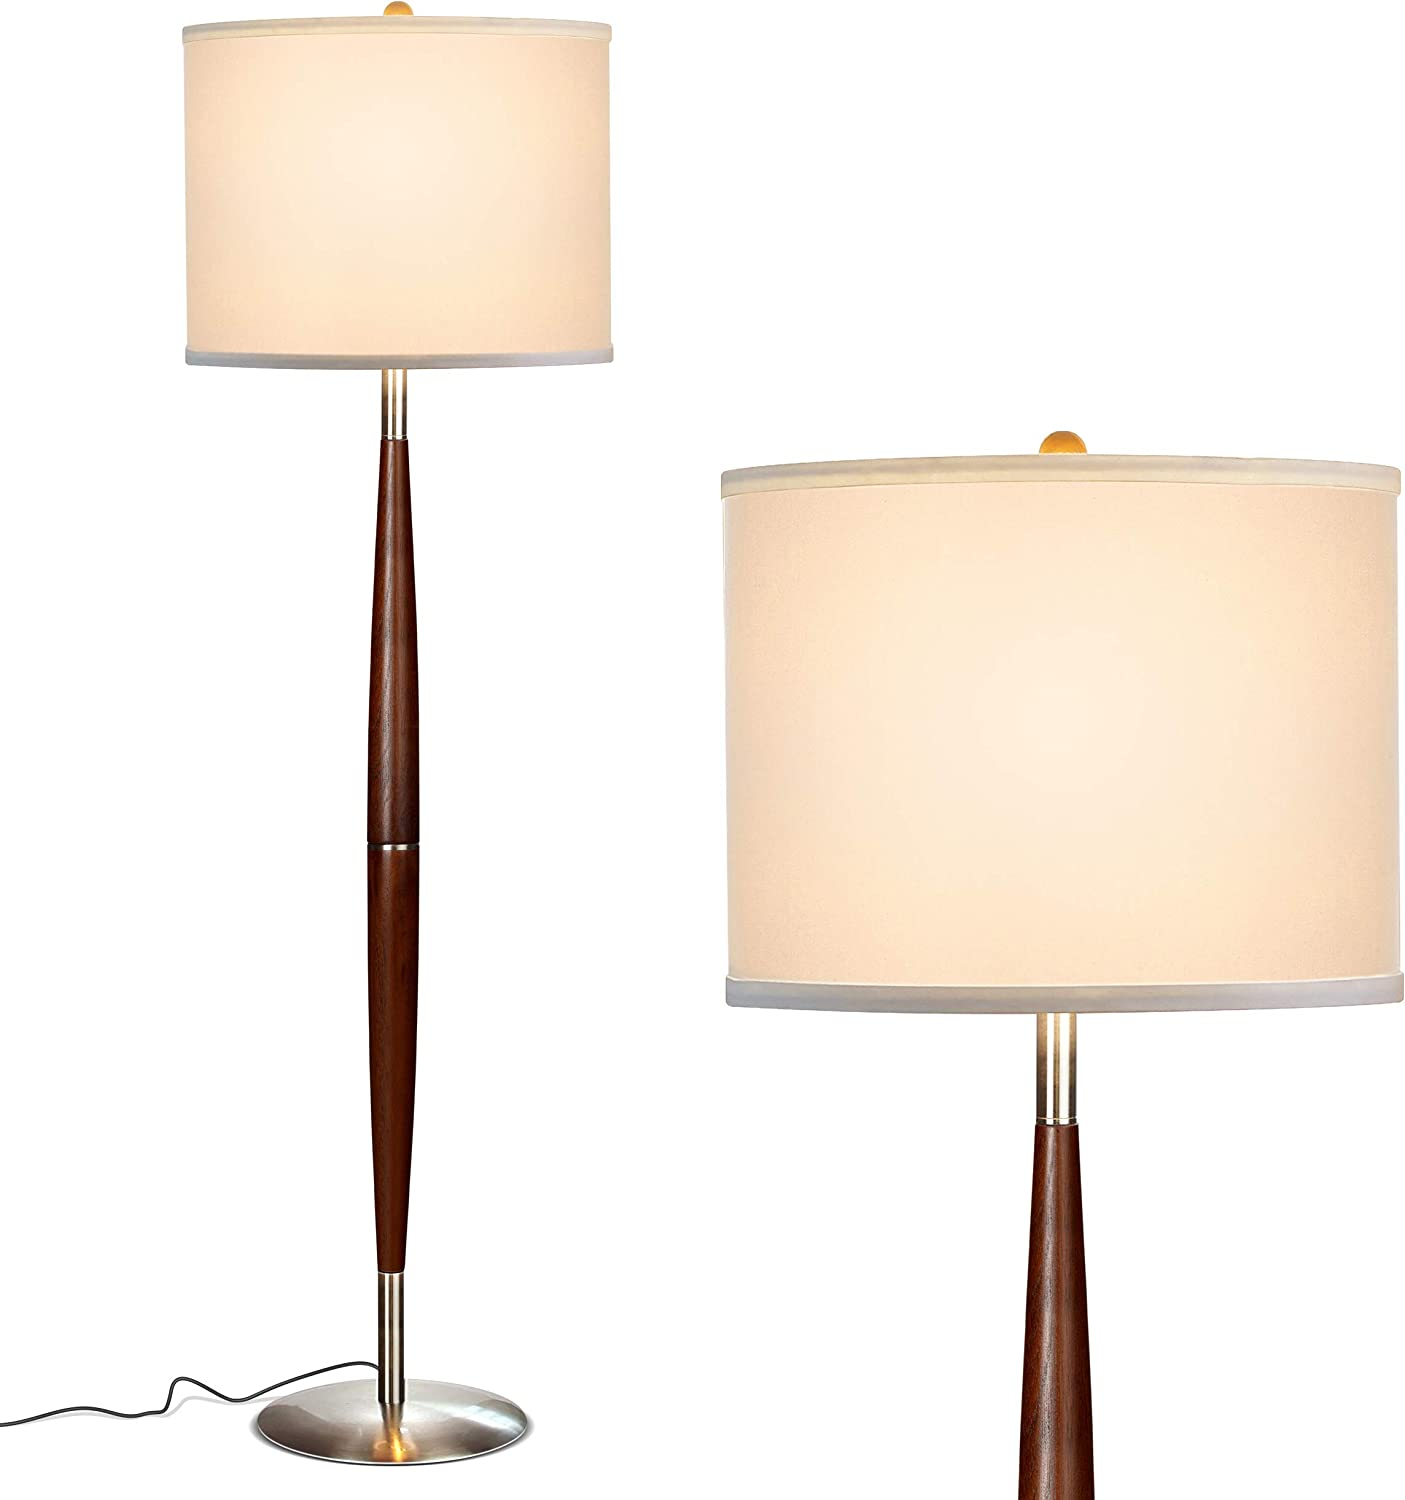 Brightech Lucas - Mid Century Modern Floor Lamp For Bedroom Reading - Brighten Living Room Corners with A Free Standing Light - Tall Office Lighting ...